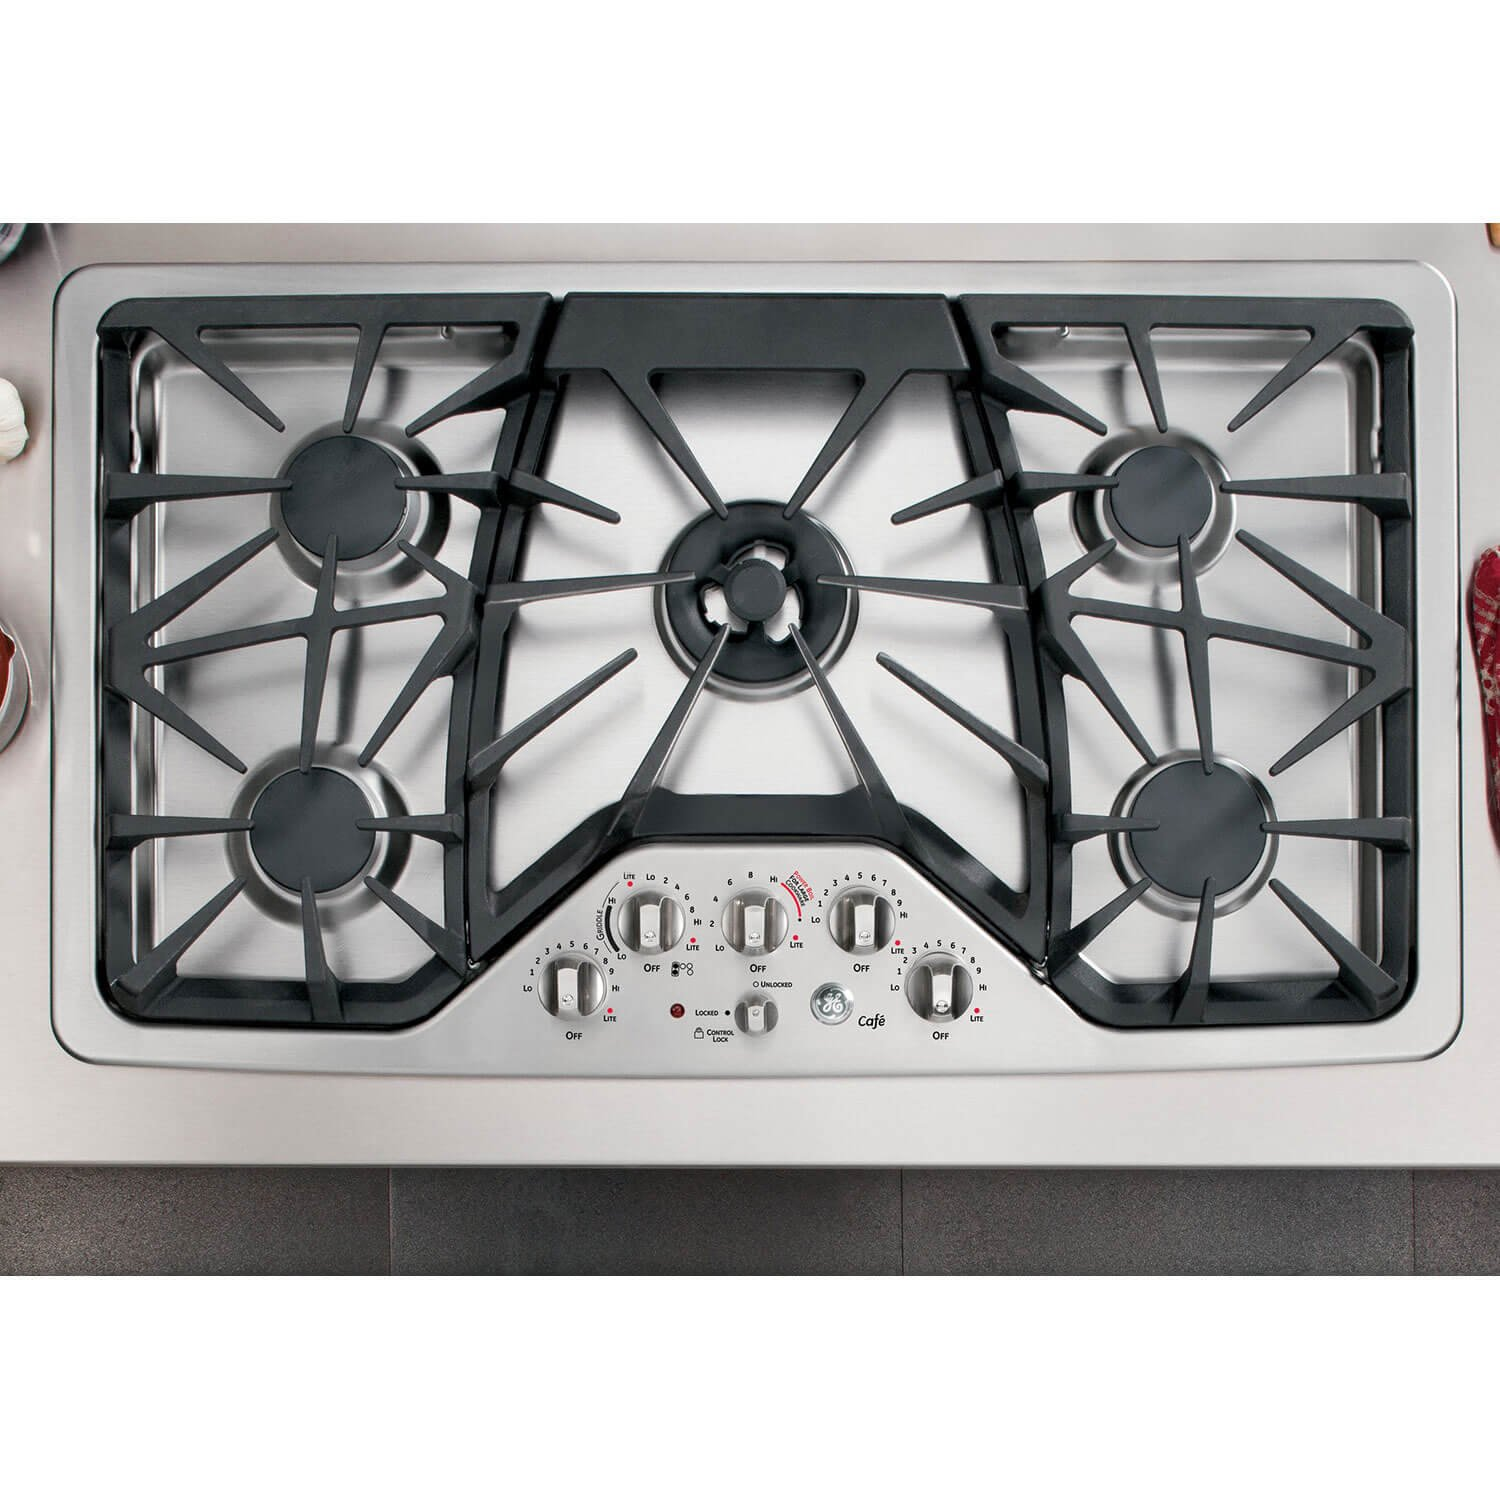 Kitchen gas stove top view - Kitchen Gas Stove Top View 59